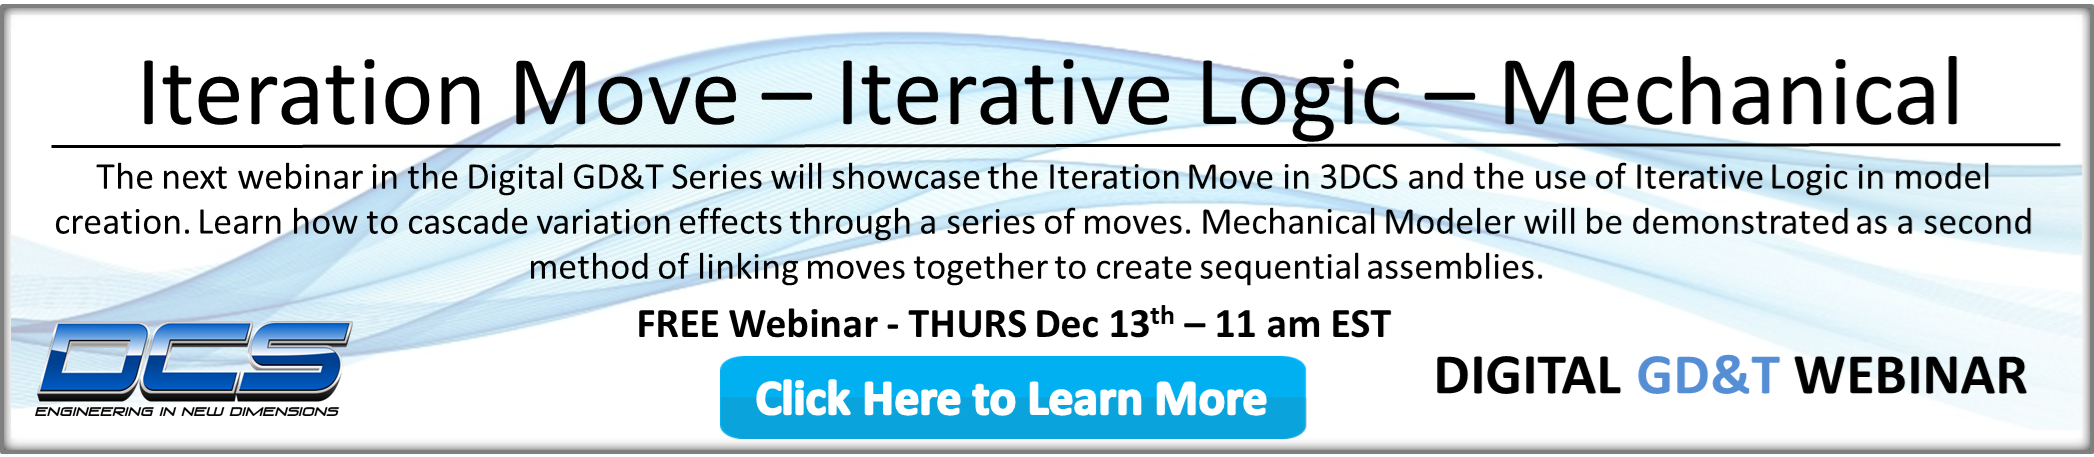 dcs-webinar-iteration-move-iterative-logic-mechanical